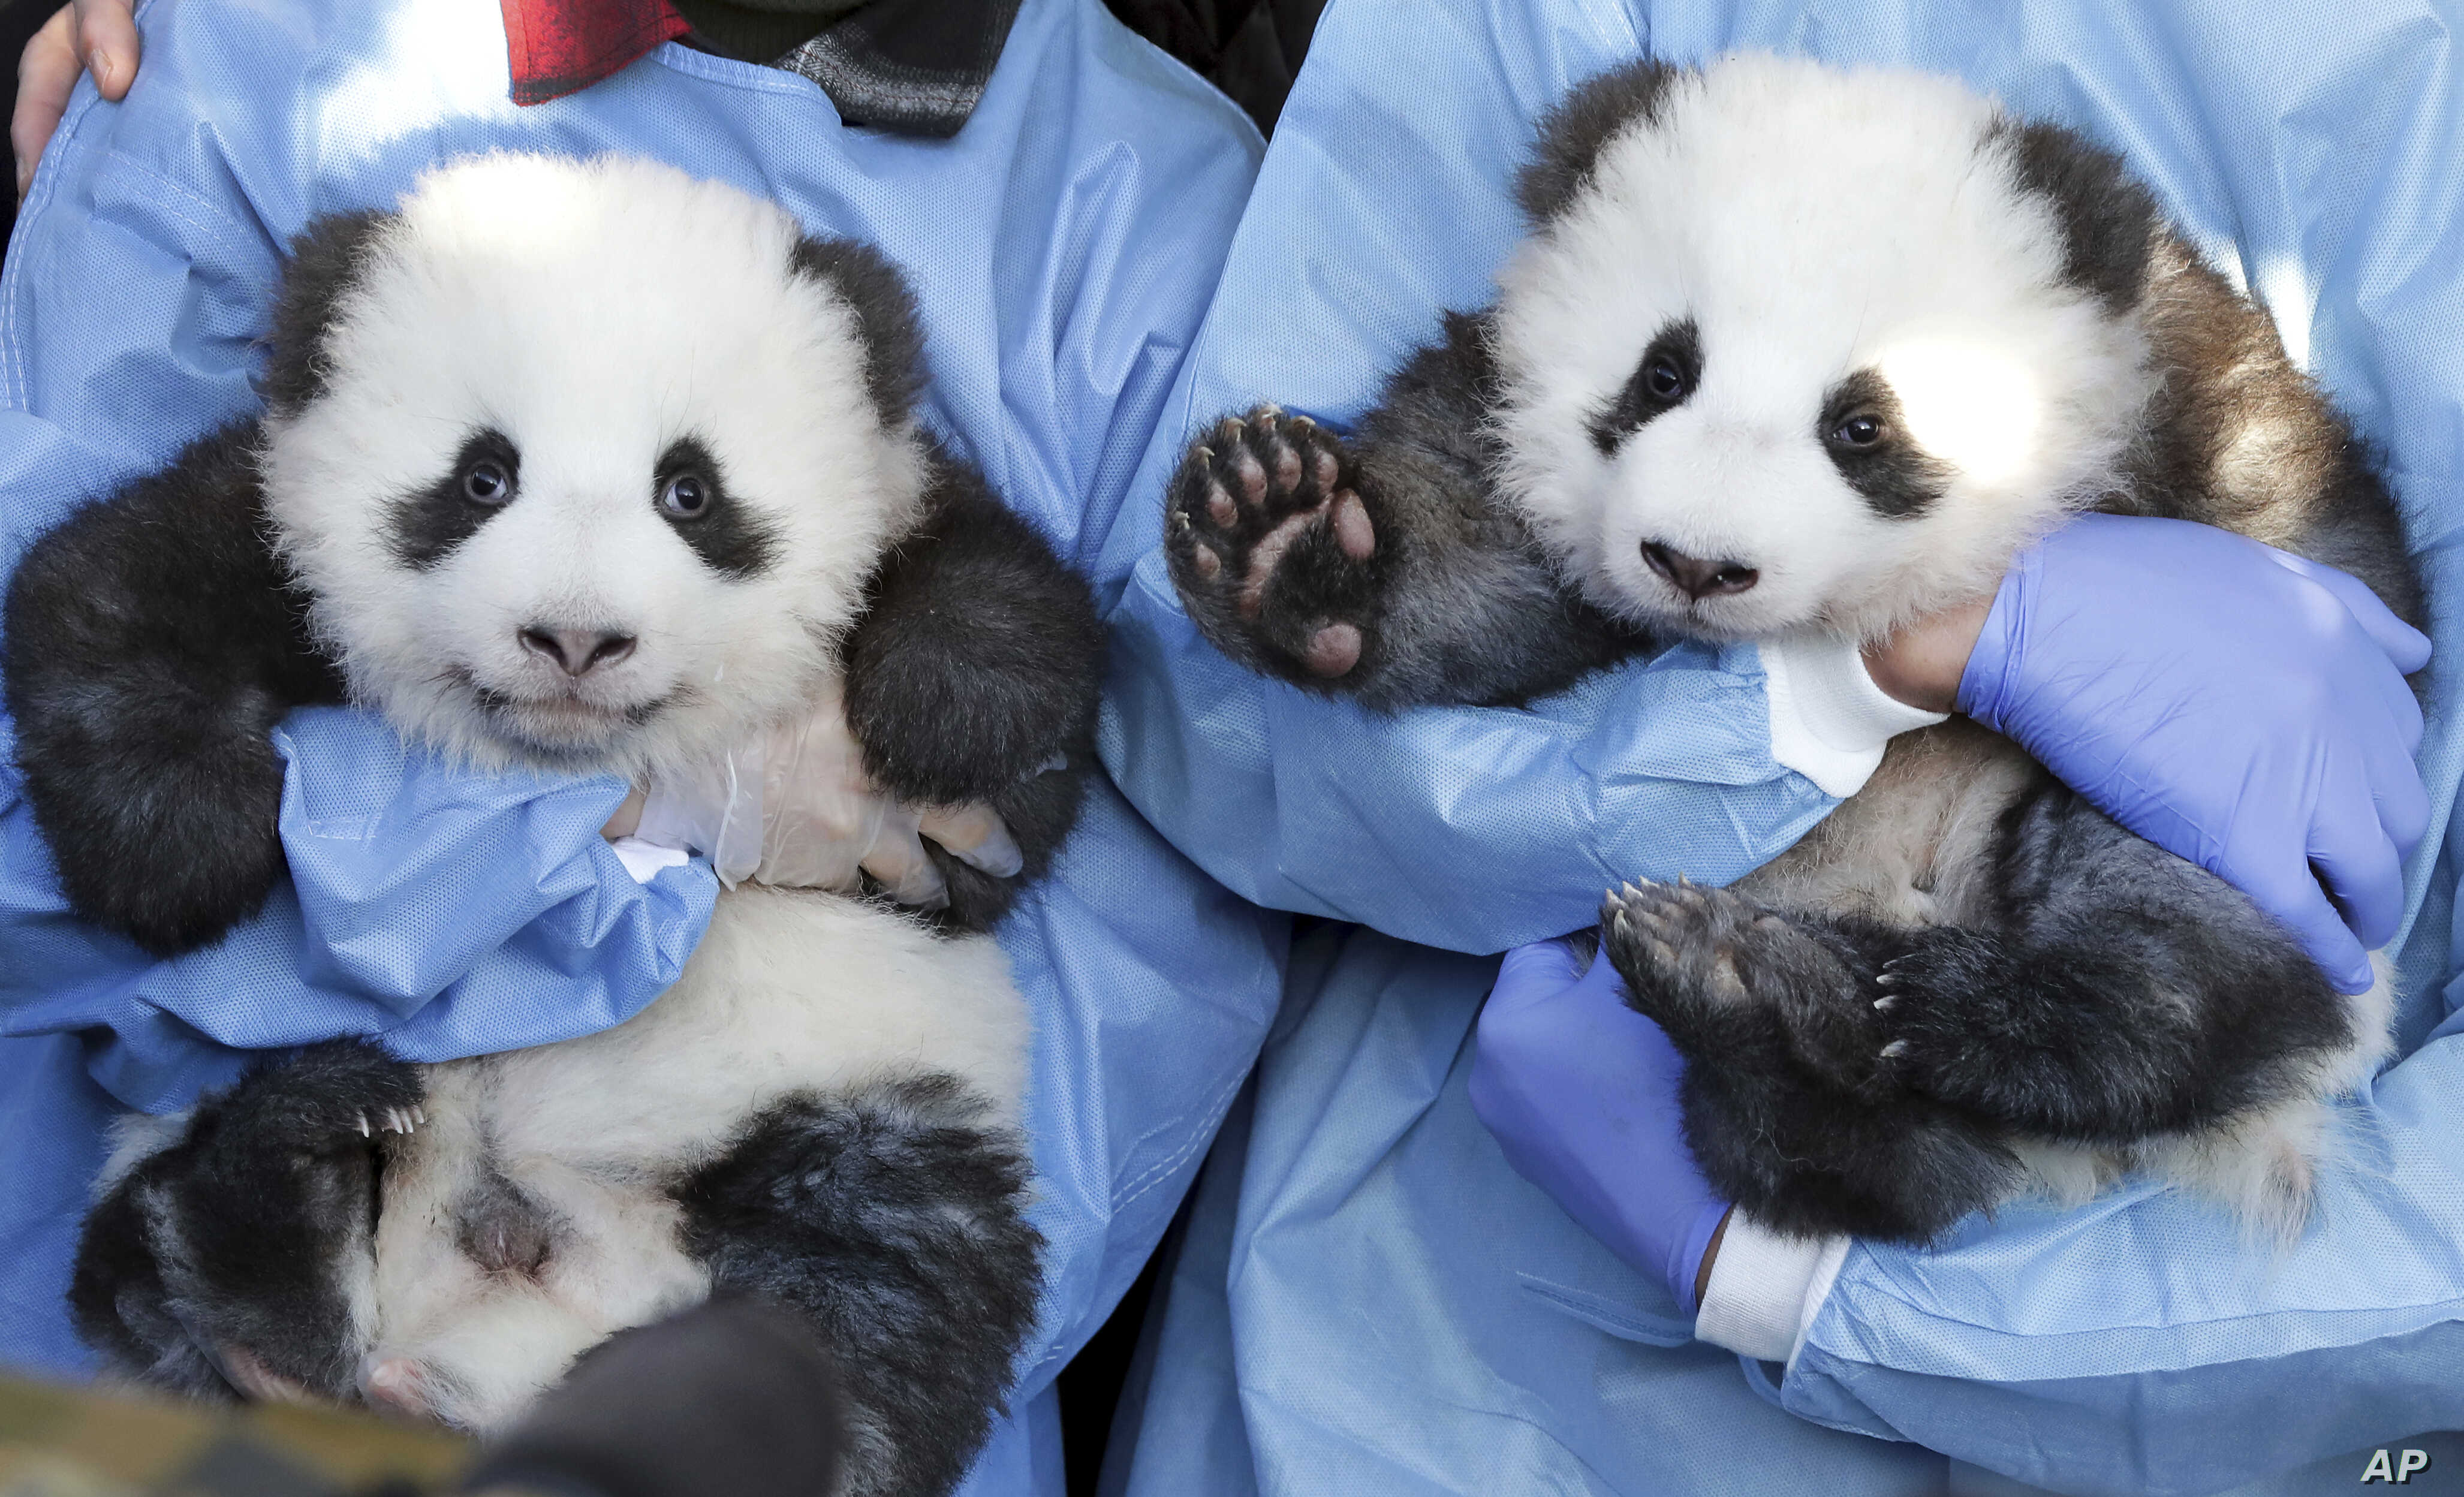 Zookeeper hold 'Meng Yuan' and 'Meng Xiang' during a name-giving event for the young panda twins at the Berlin Zoo in Berlin, Germany.